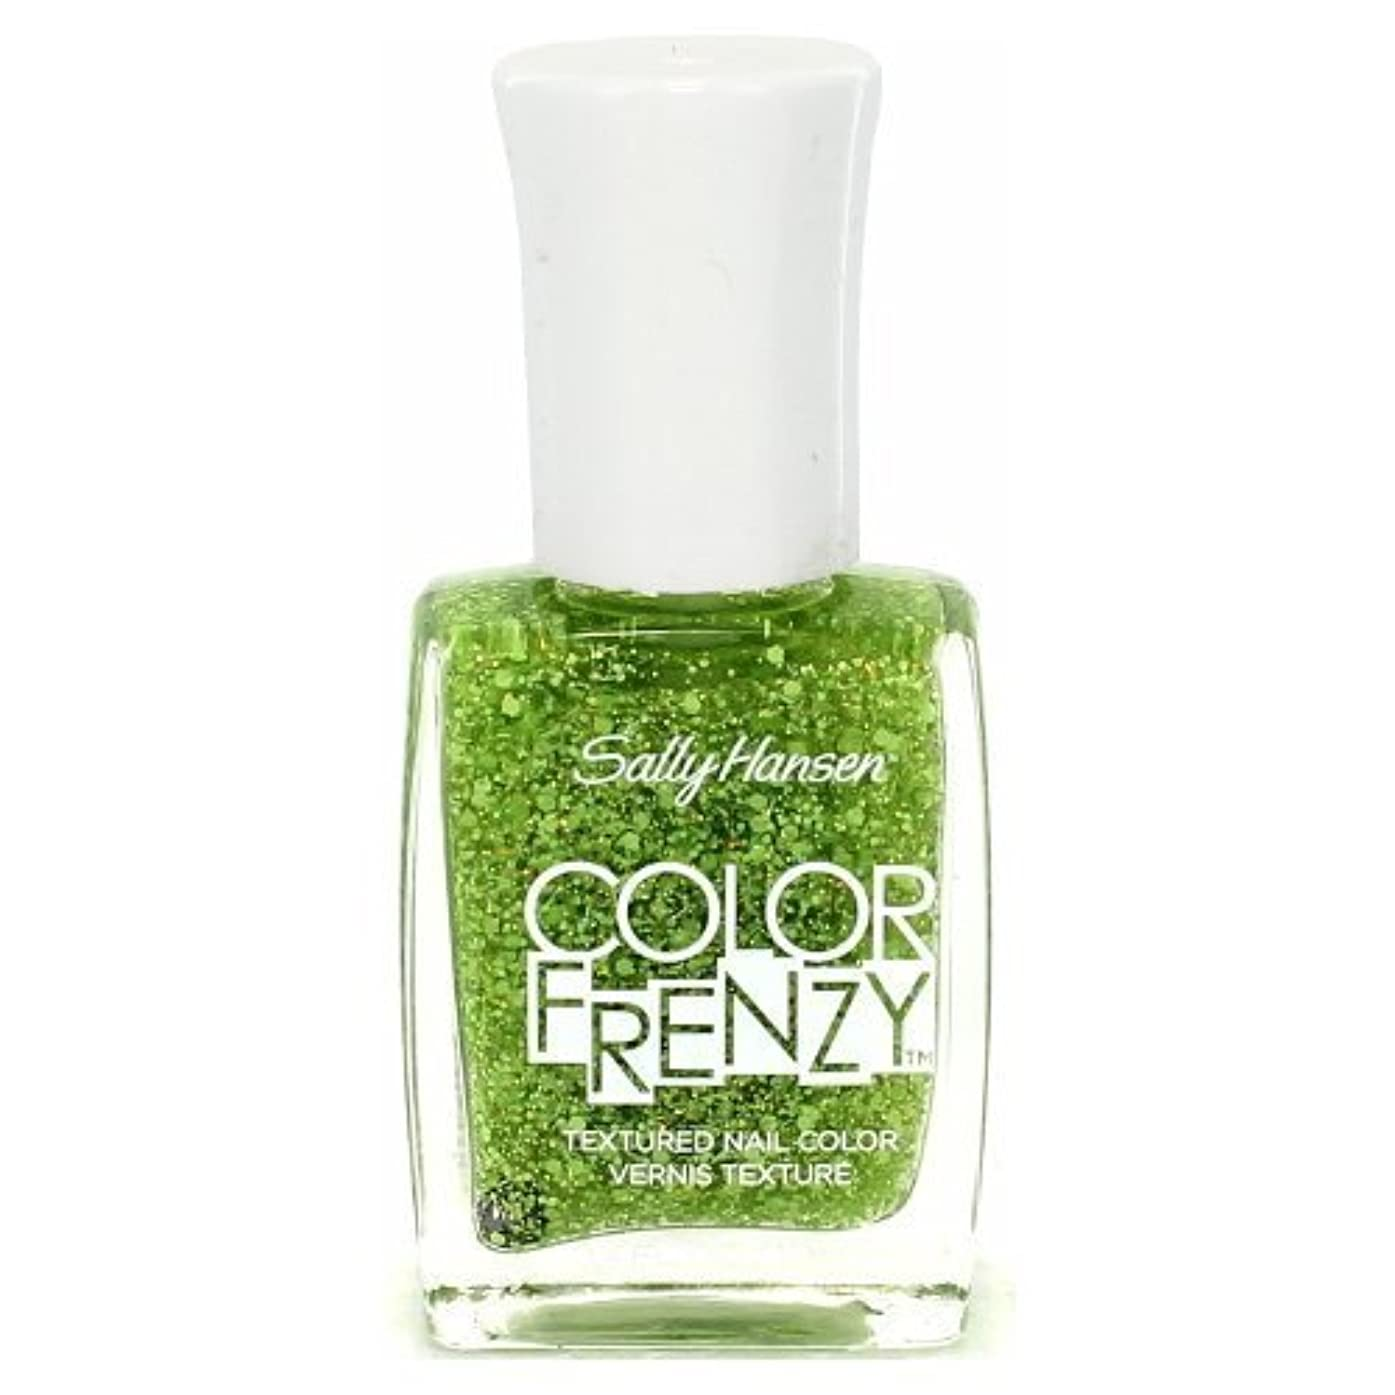 郵便屋さん動的ライターSALLY HANSEN Color Frenzy Textured Nail Color - Green Machine (並行輸入品)